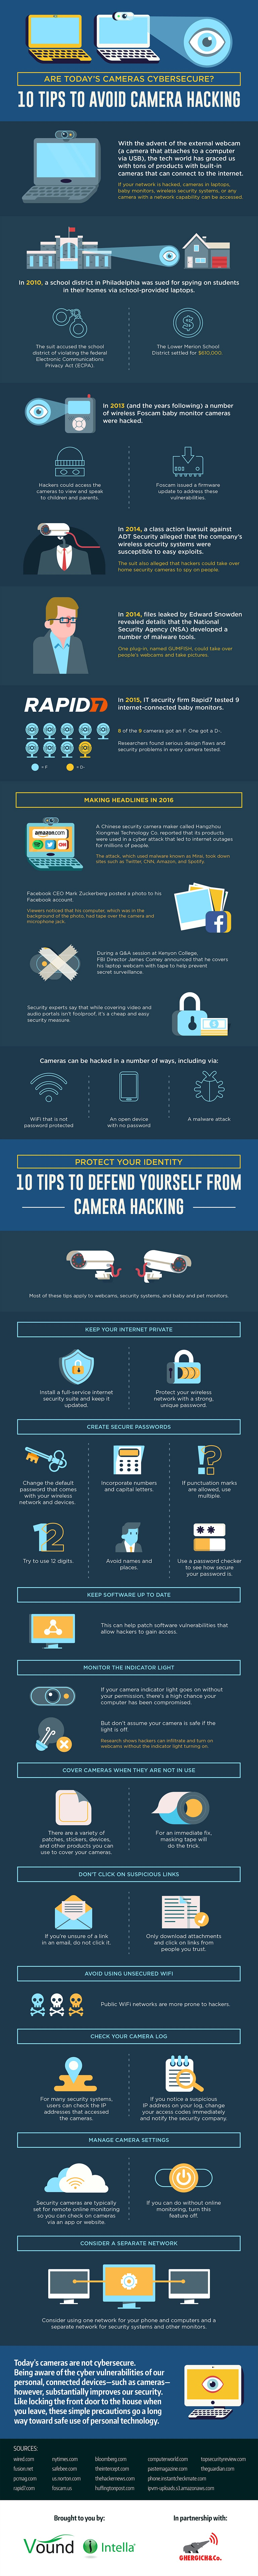 10 Tips to Avoid Camera Hacking - #infographic